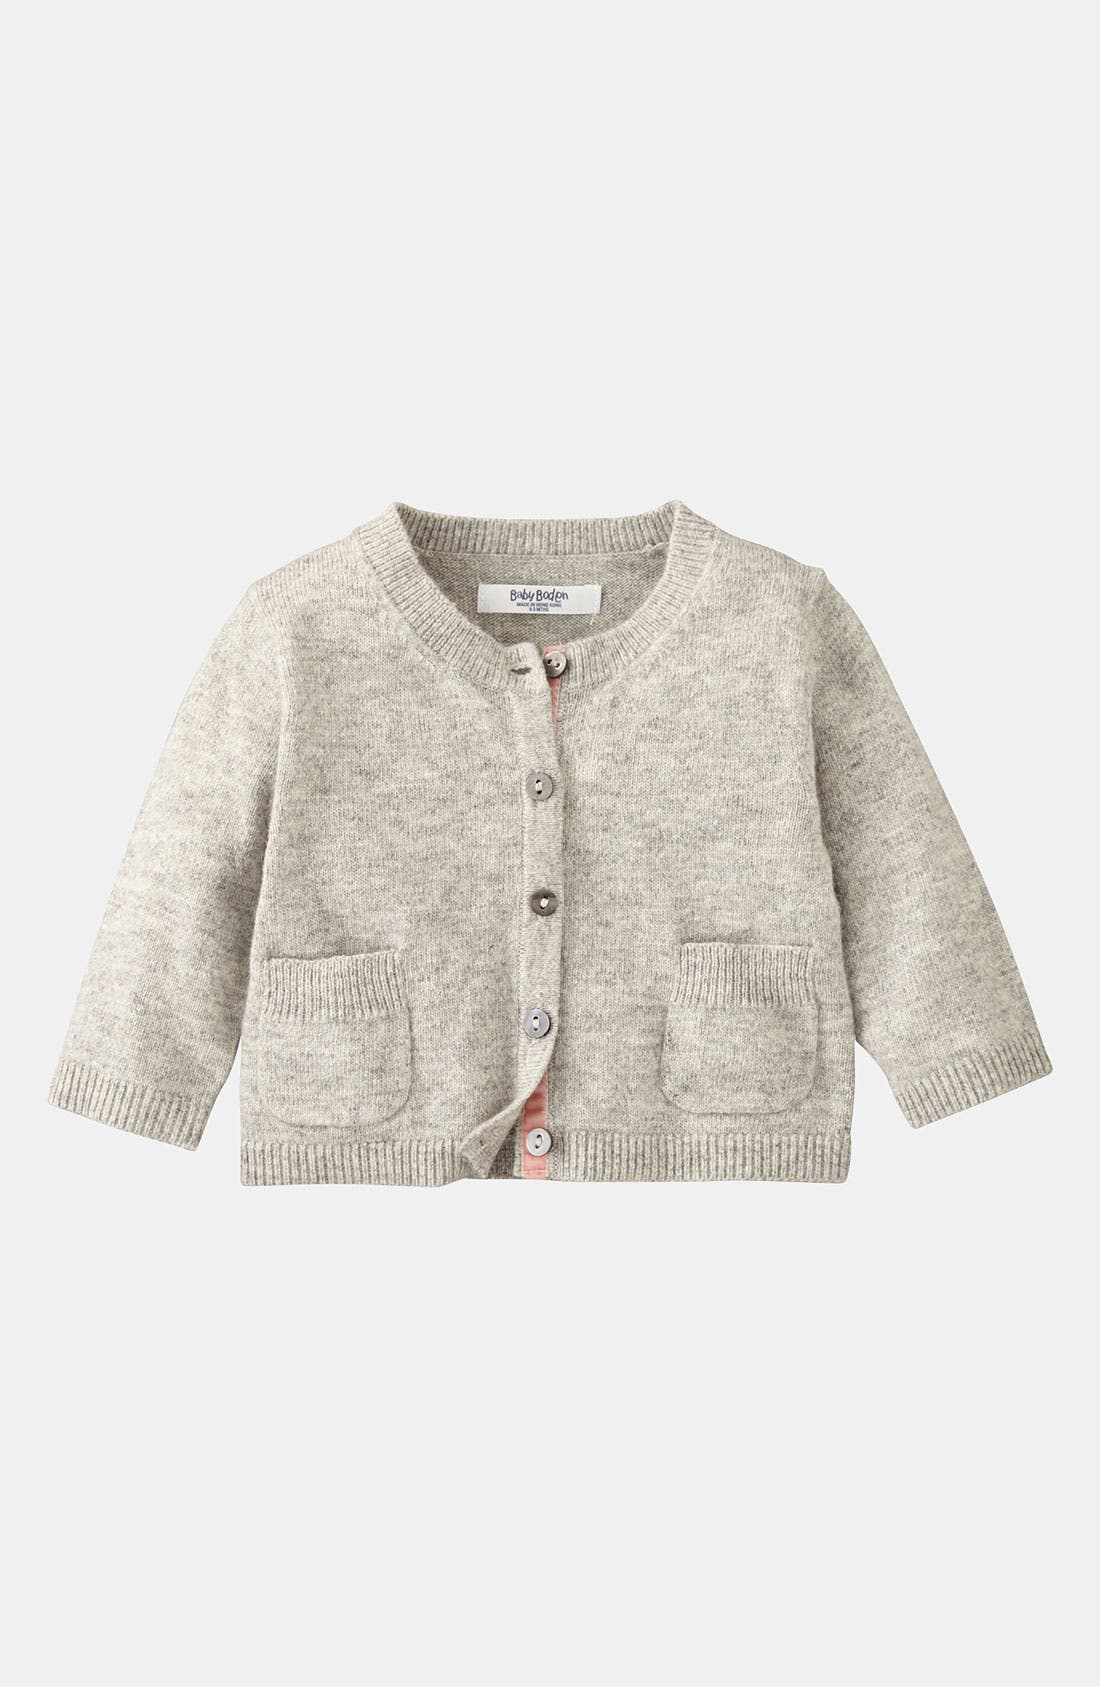 Alternate Image 1 Selected - Mini Boden 'Baby' Cardigan (Infant)